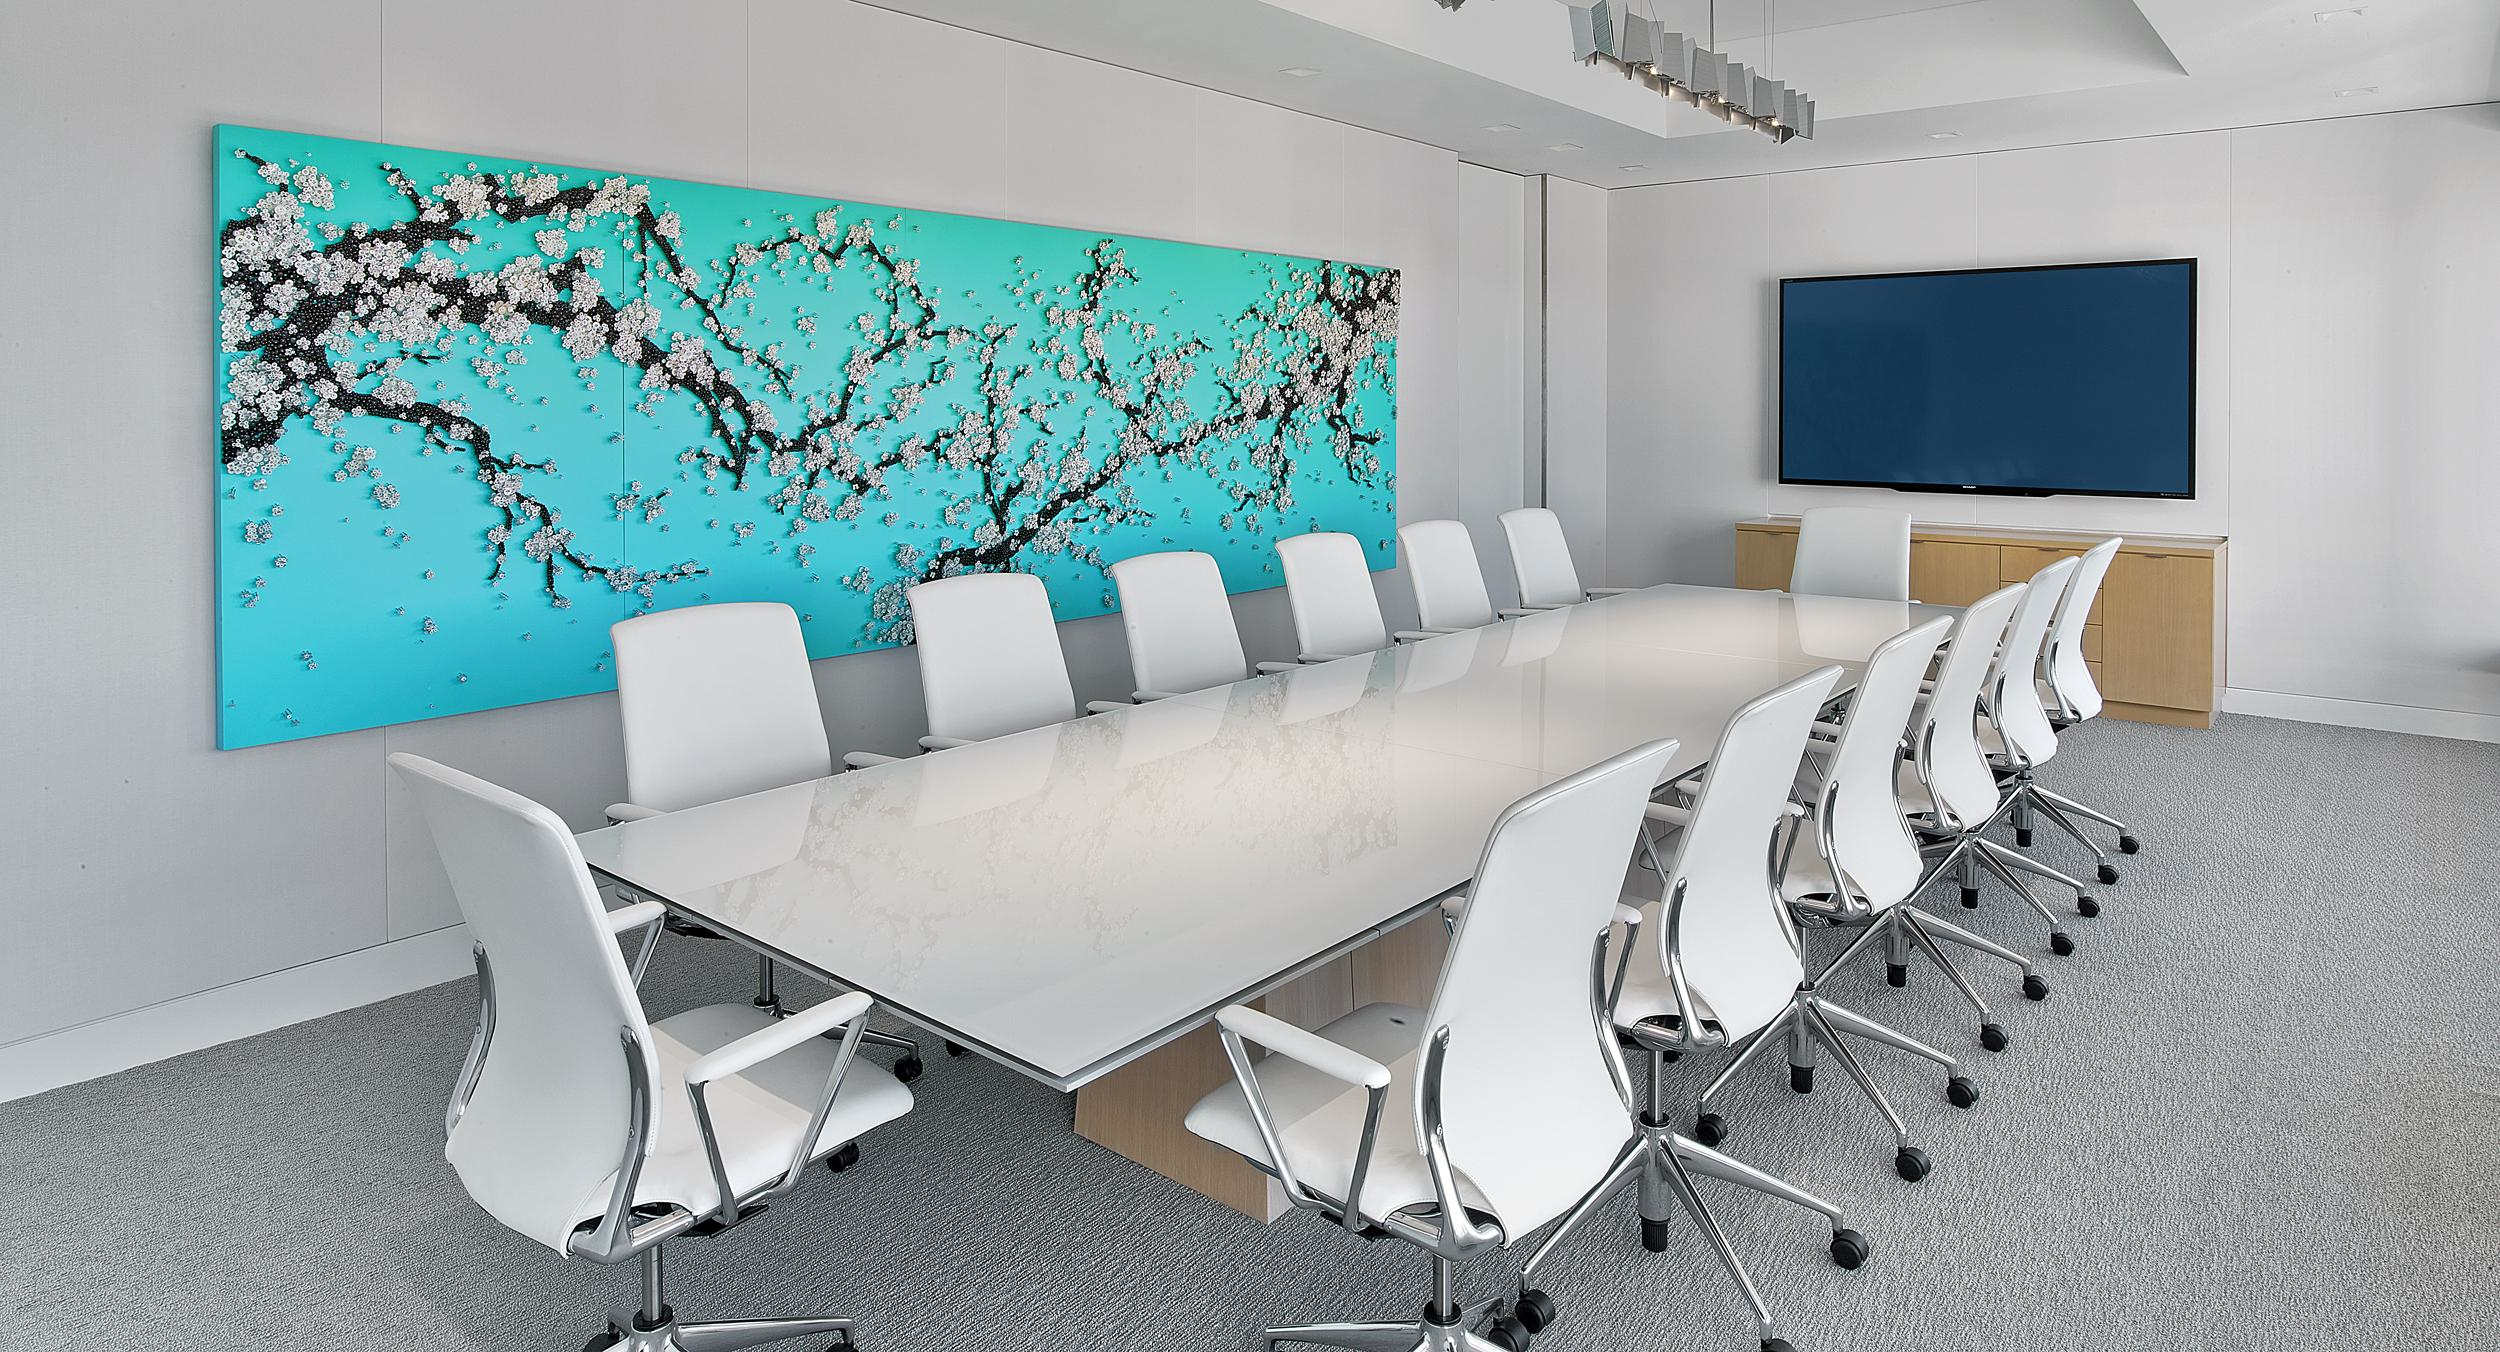 A sixteen-foot MESA table resides in the organization's main conference room.